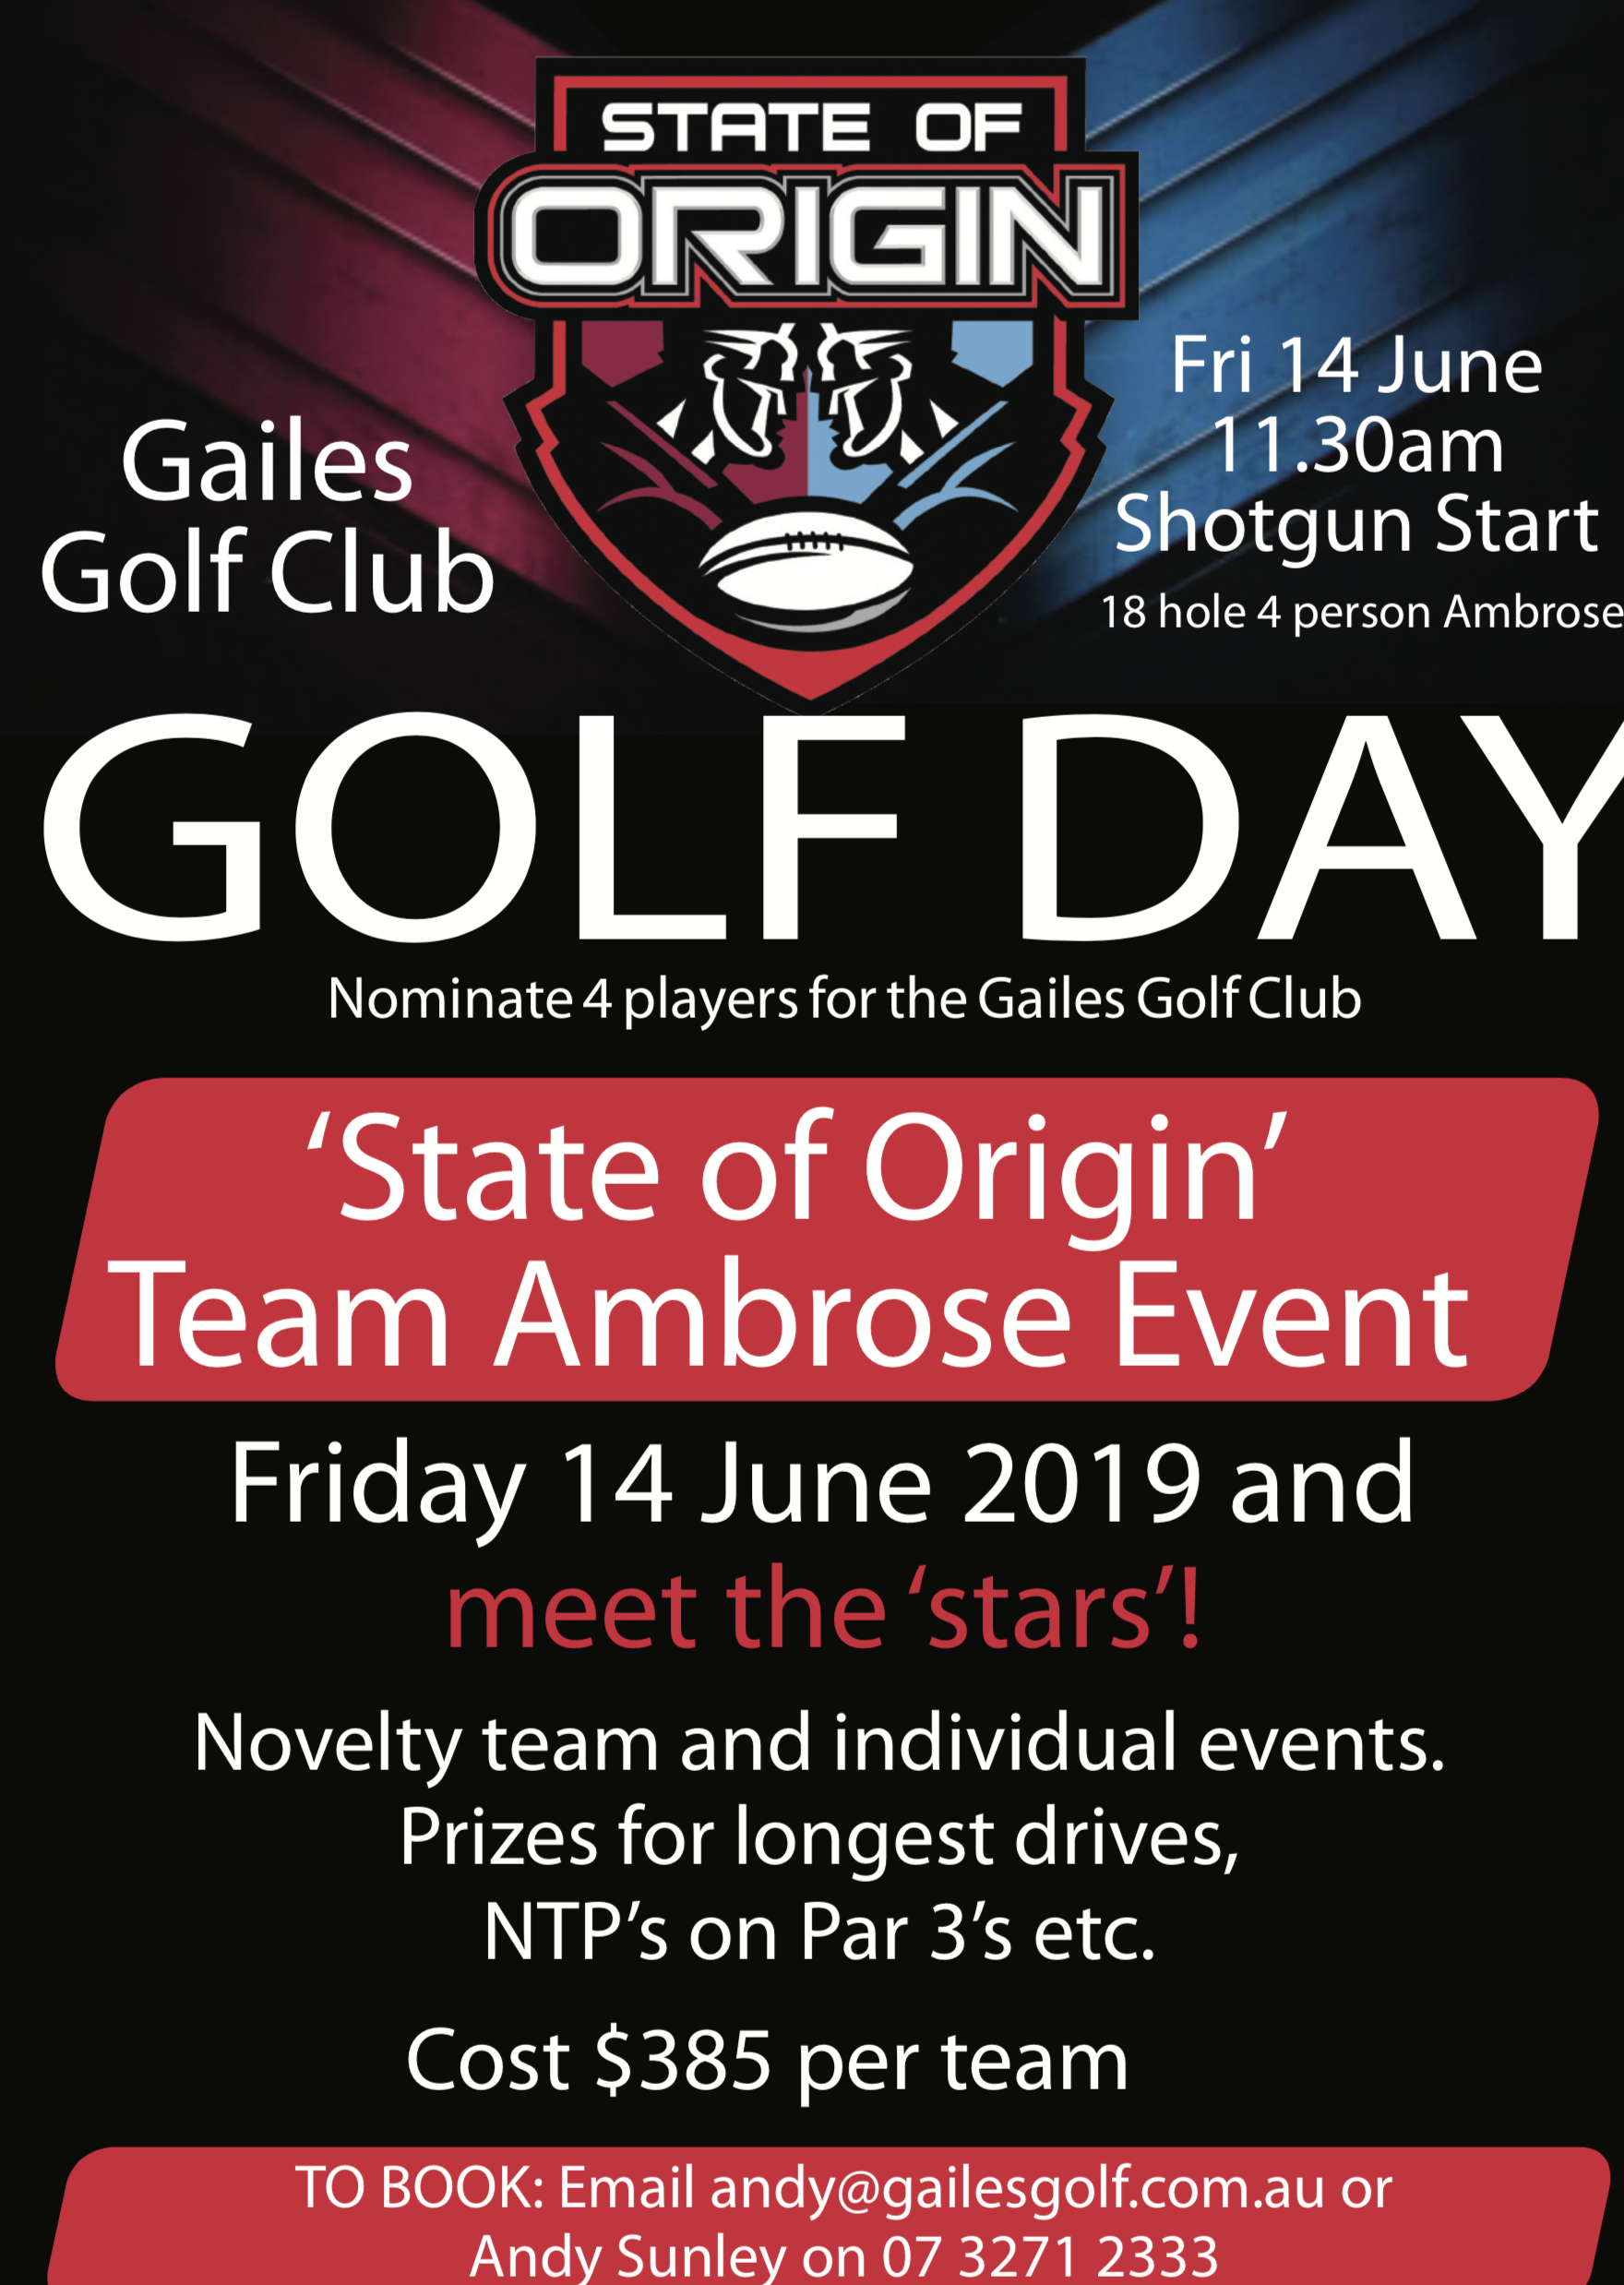 Swich On Inc is proud to assist our friends at Gailes Golf Club promote this event